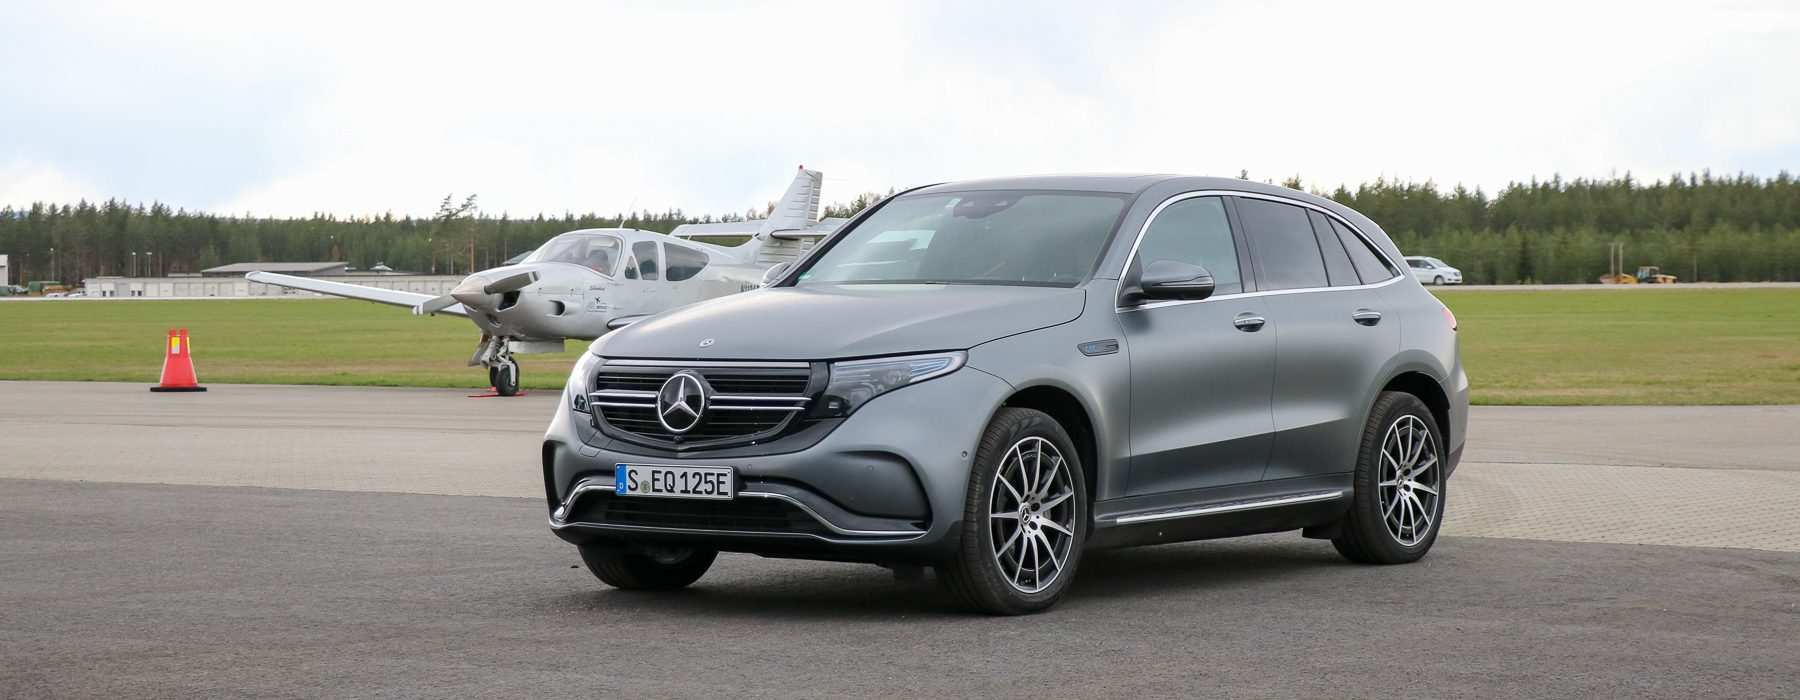 23 A Mercedes Benz Eqc 2019 Review